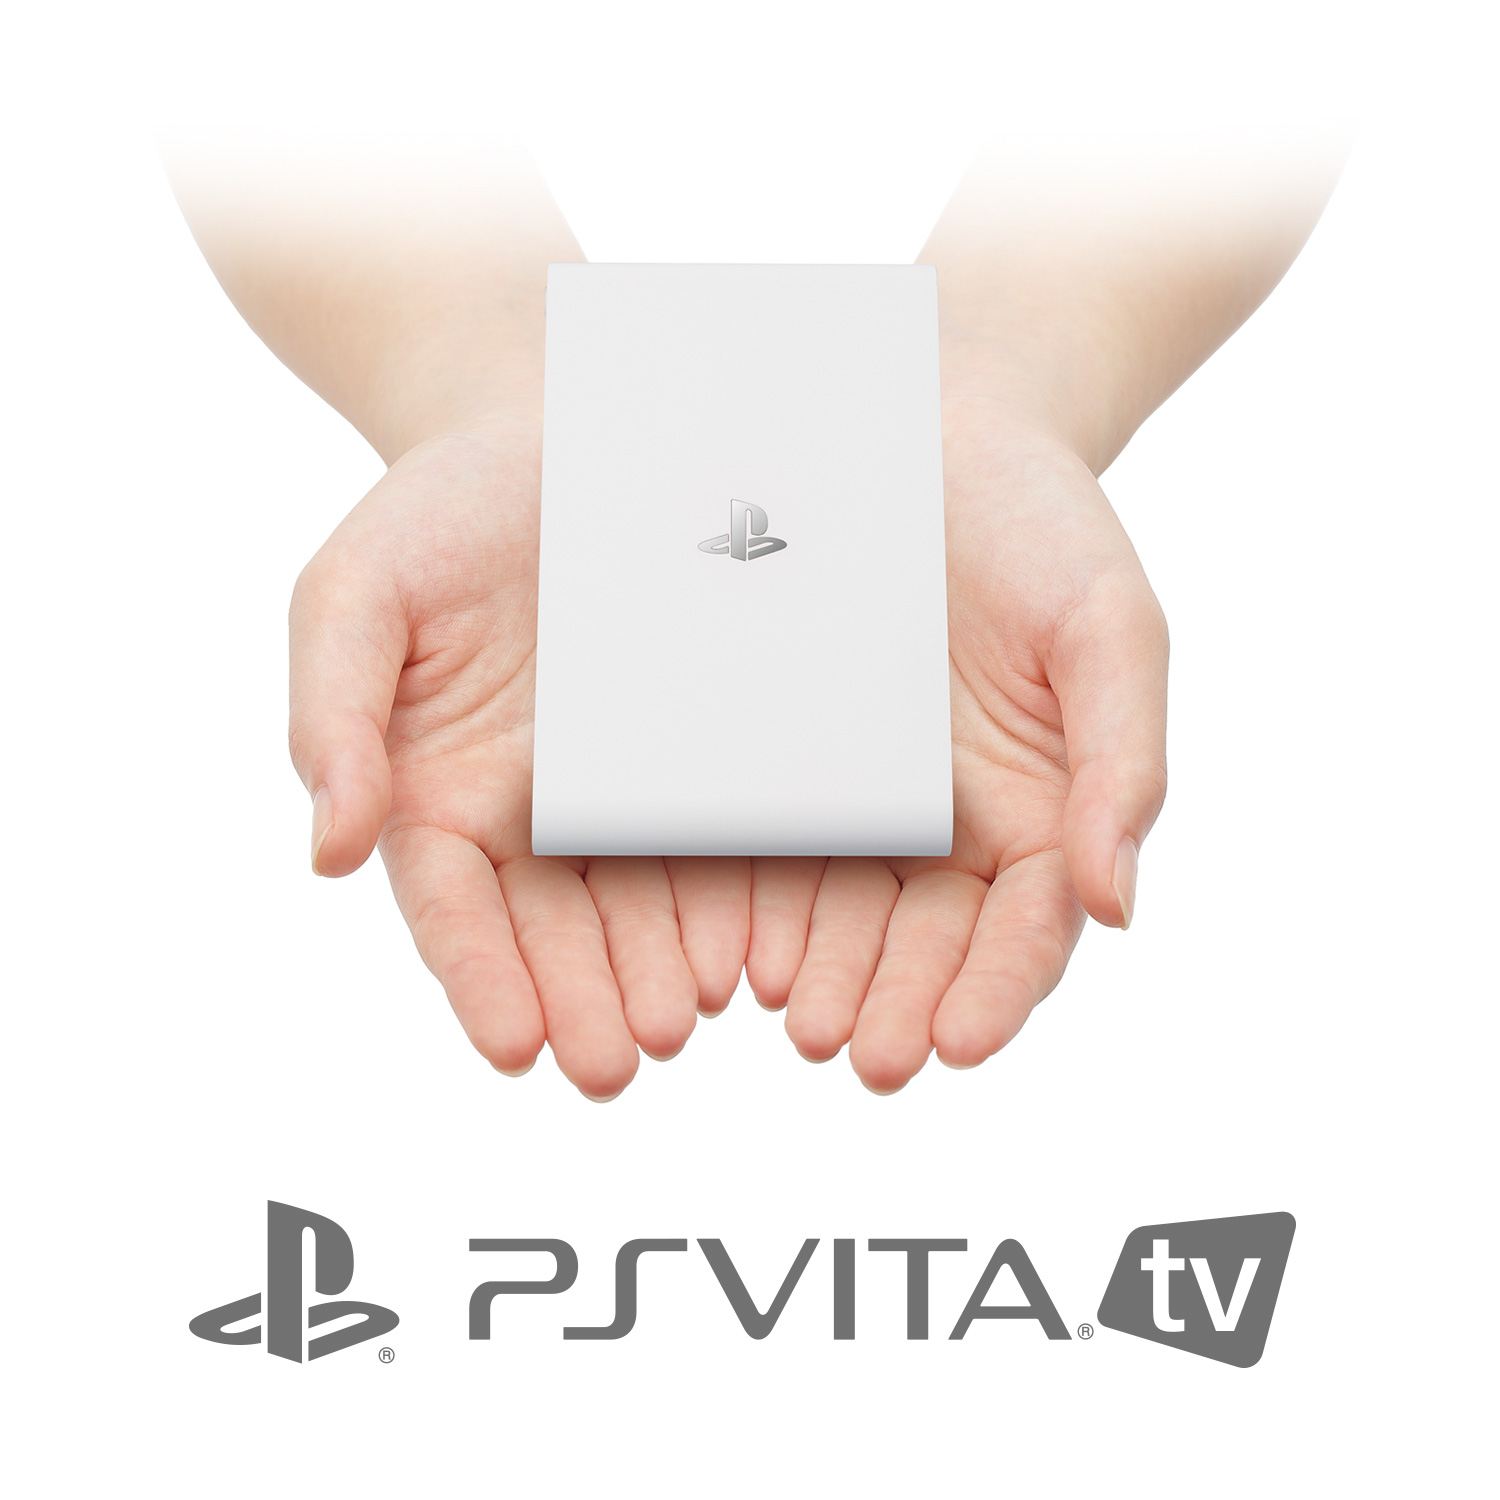 You will hold the Vita TV like this exactly once, then it will sit largely unused in your entertainment center.